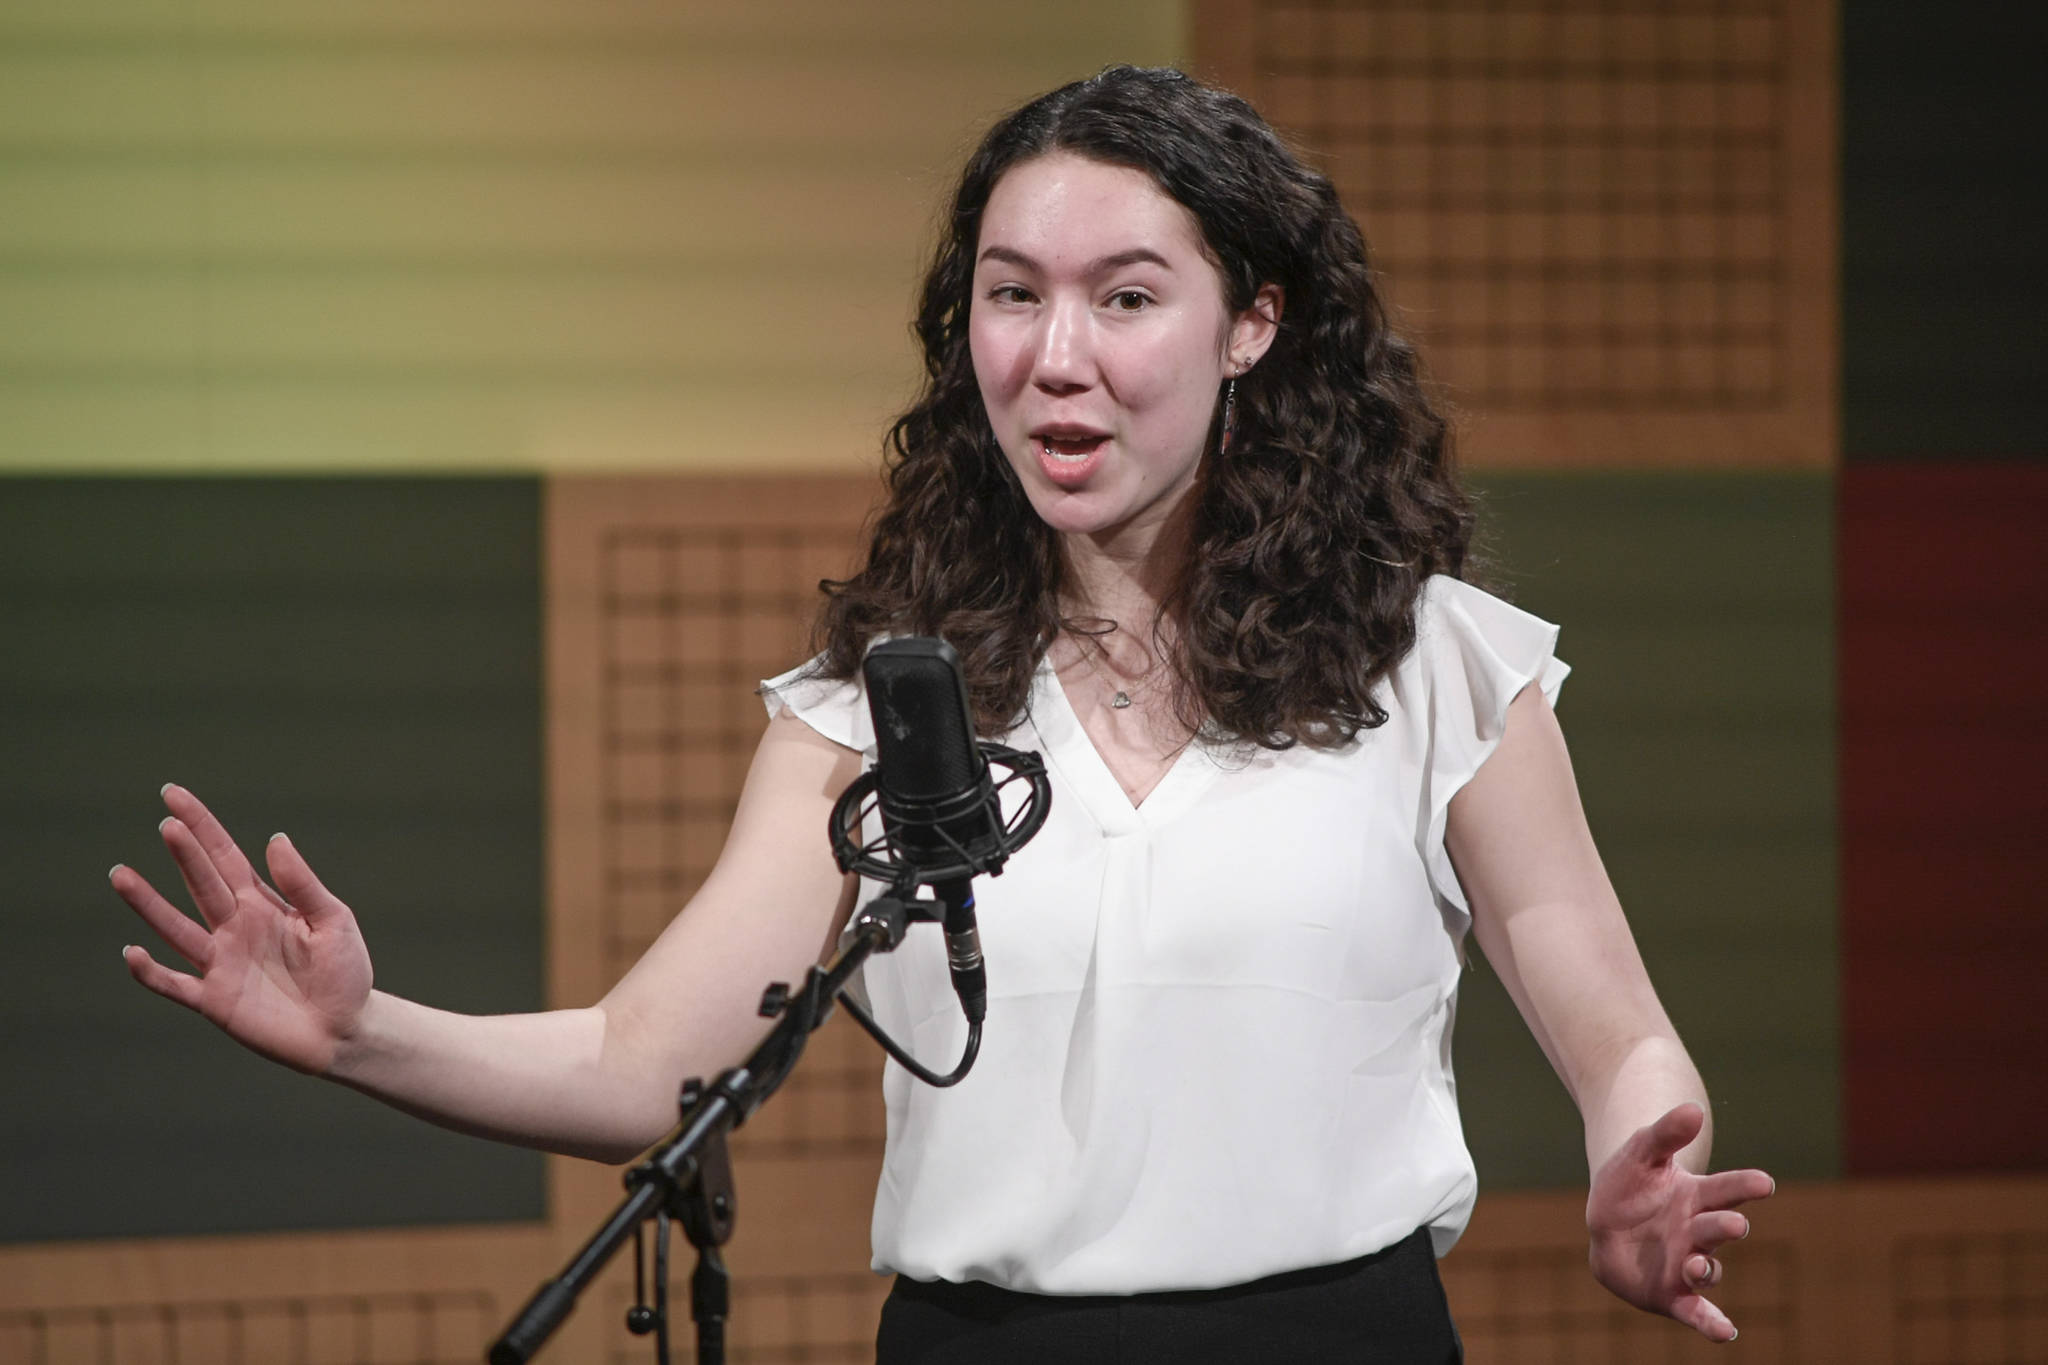 Natalie</span> Fraser of West Anchorage High School recites one of her three poems at the annual Poetry Out Loud State Championships held at KTOO's @360 Studio on Thursday, March 7, 2019. Fraser placed second in the event. (Michael Penn | Juneau Empire)